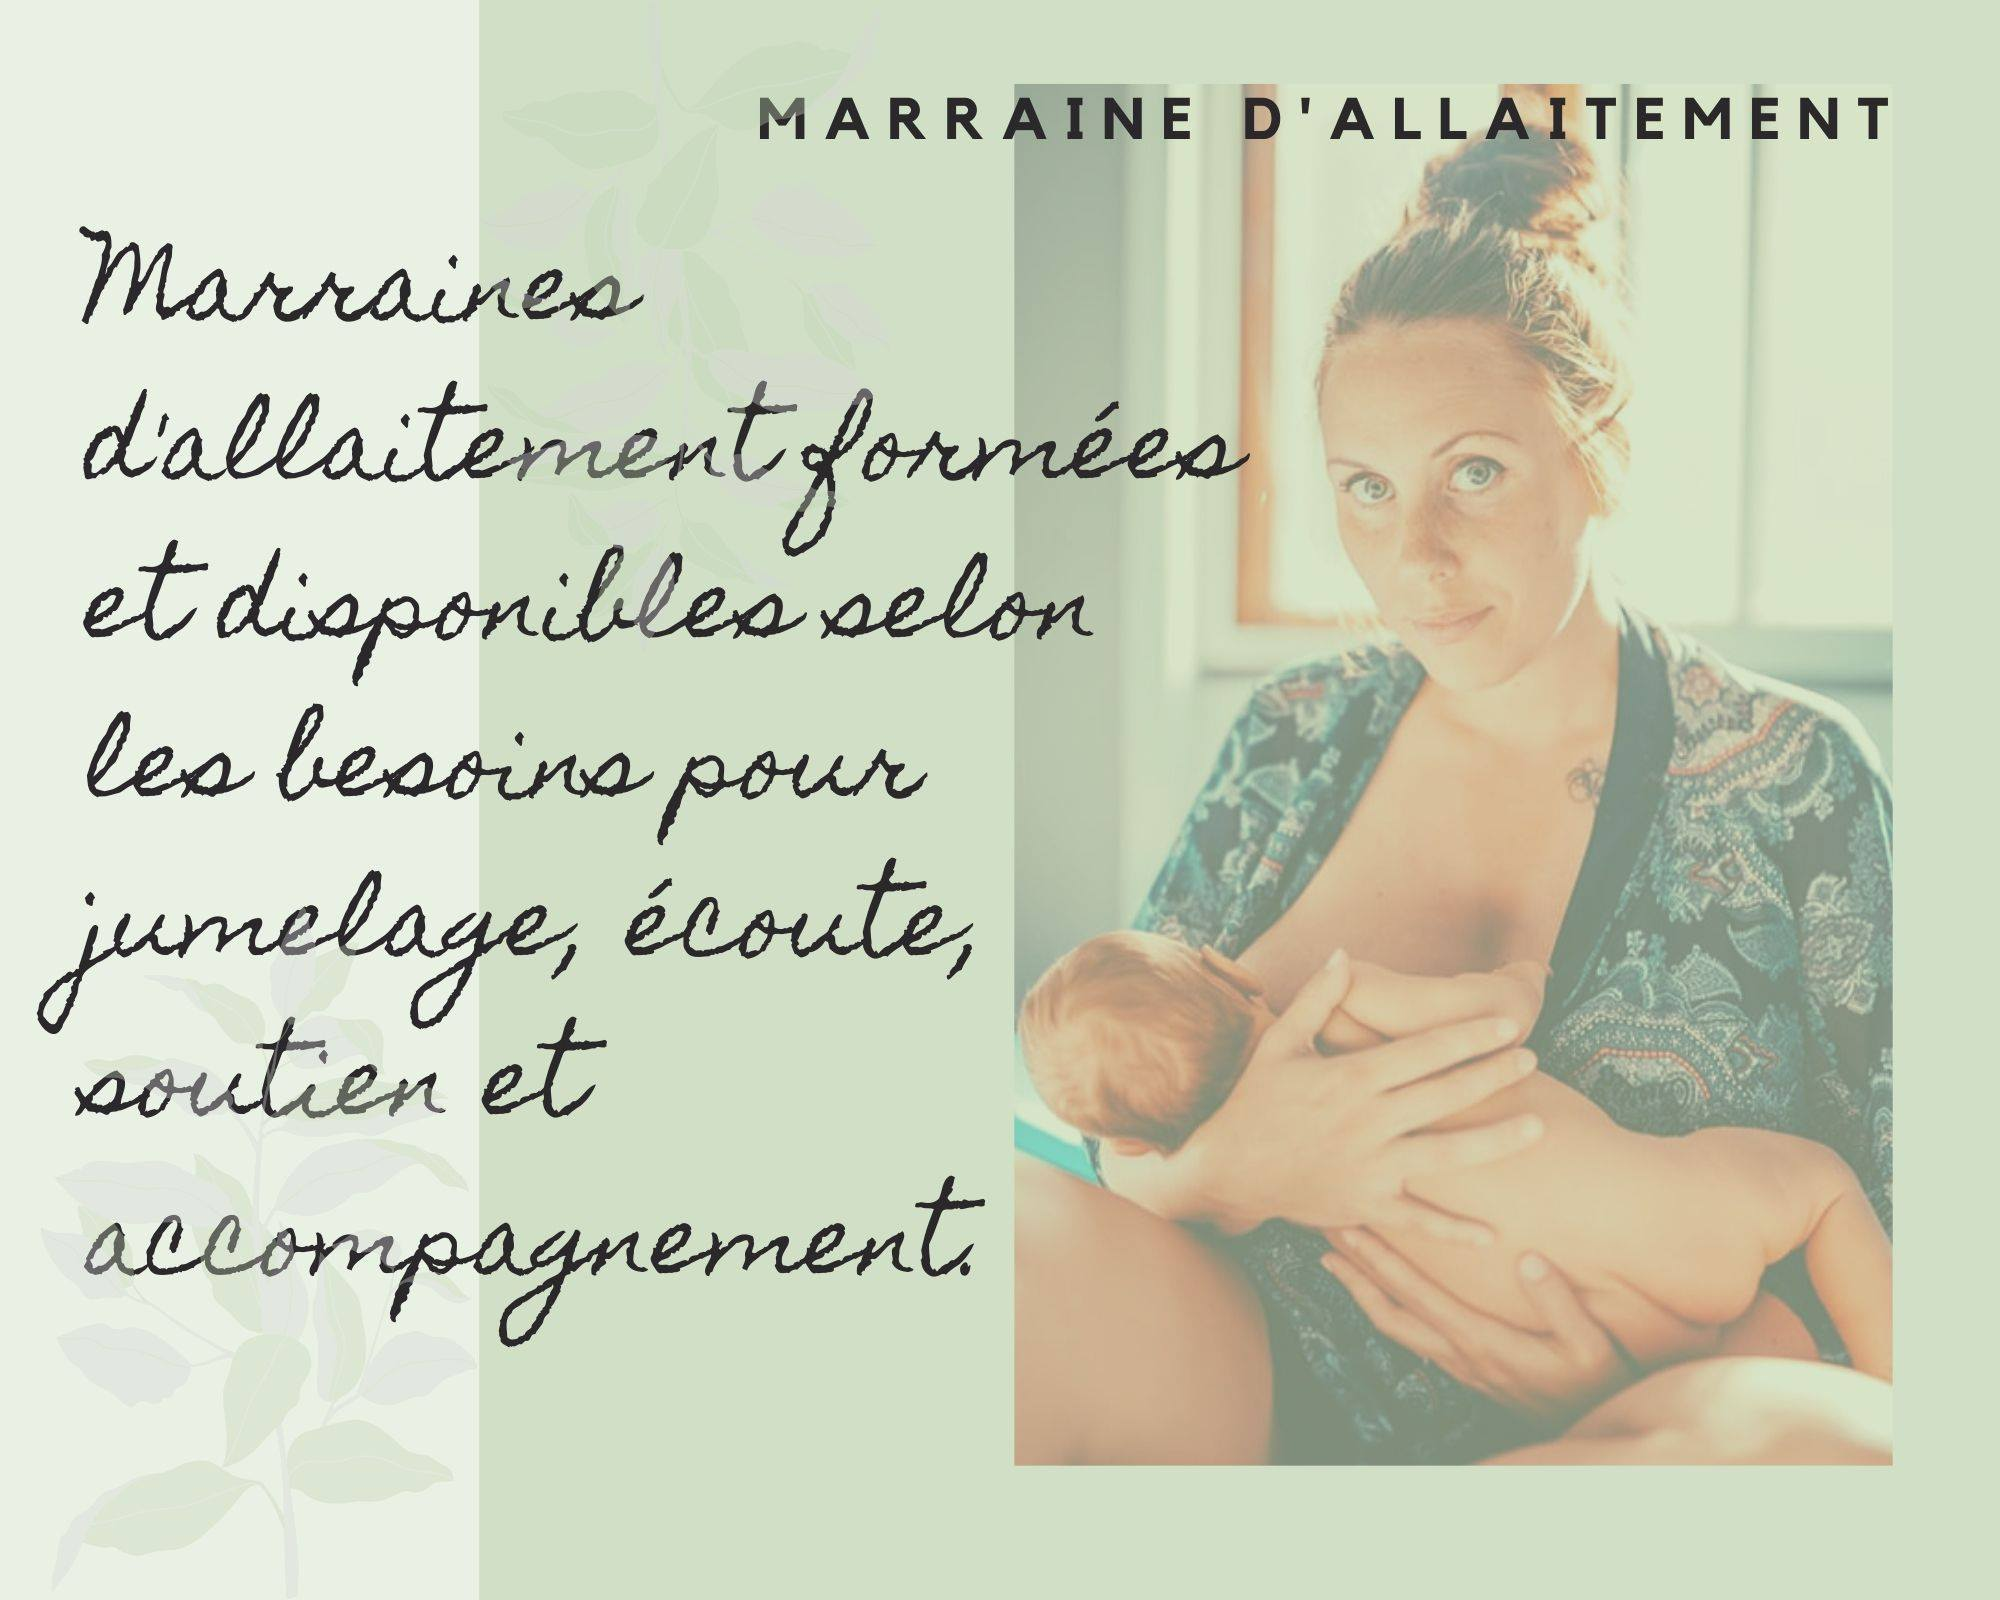 Marrained'allaitement